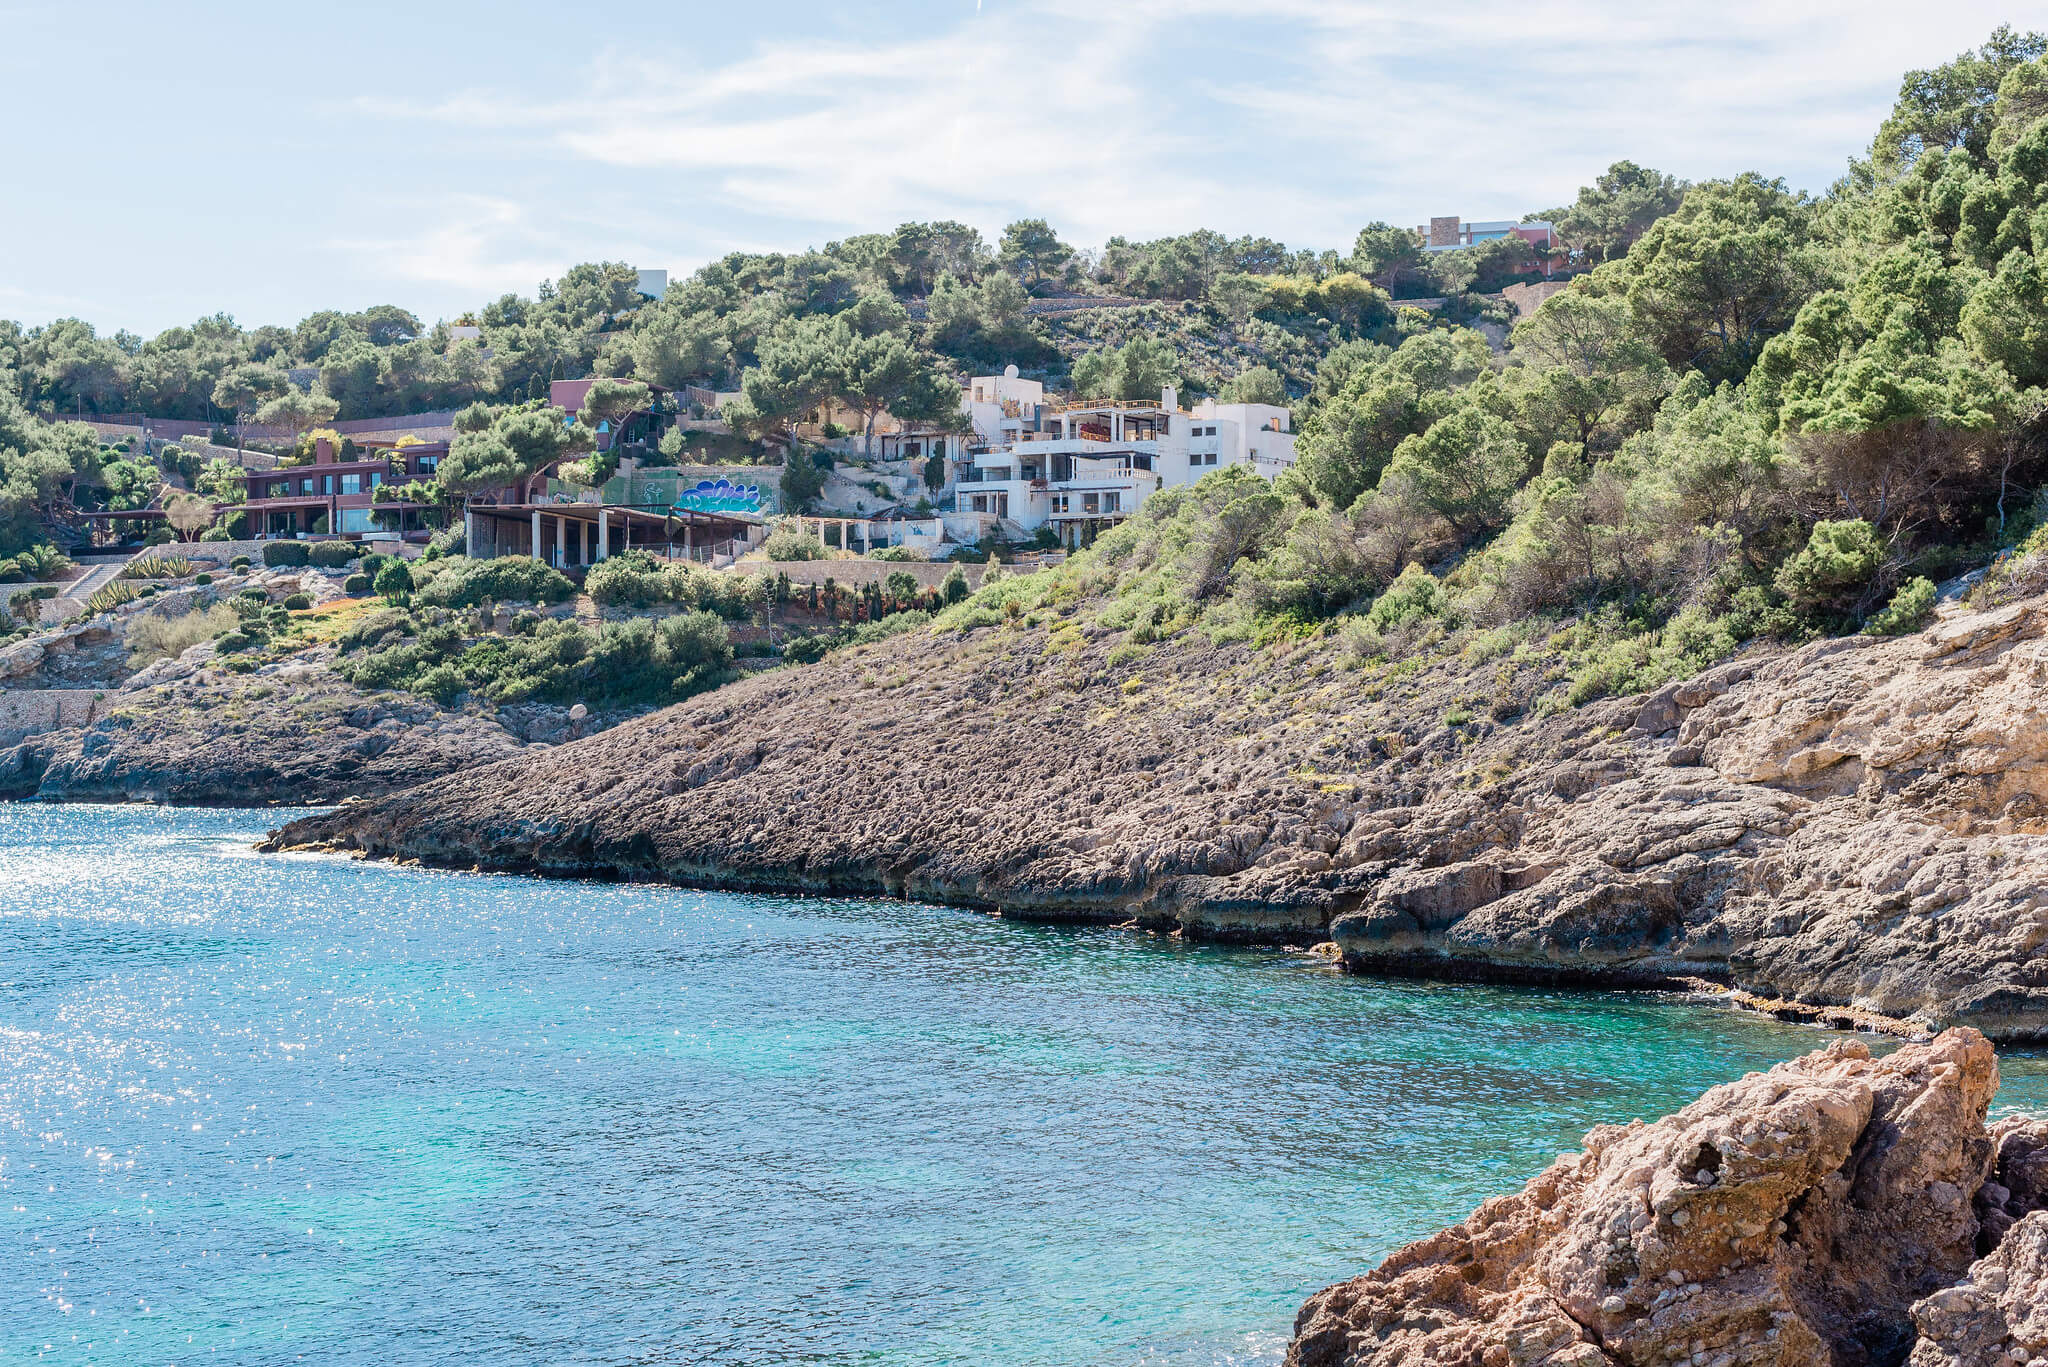 https://www.white-ibiza.com/wp-content/uploads/2020/03/ibiza-beaches-cala-olivera-02.jpg